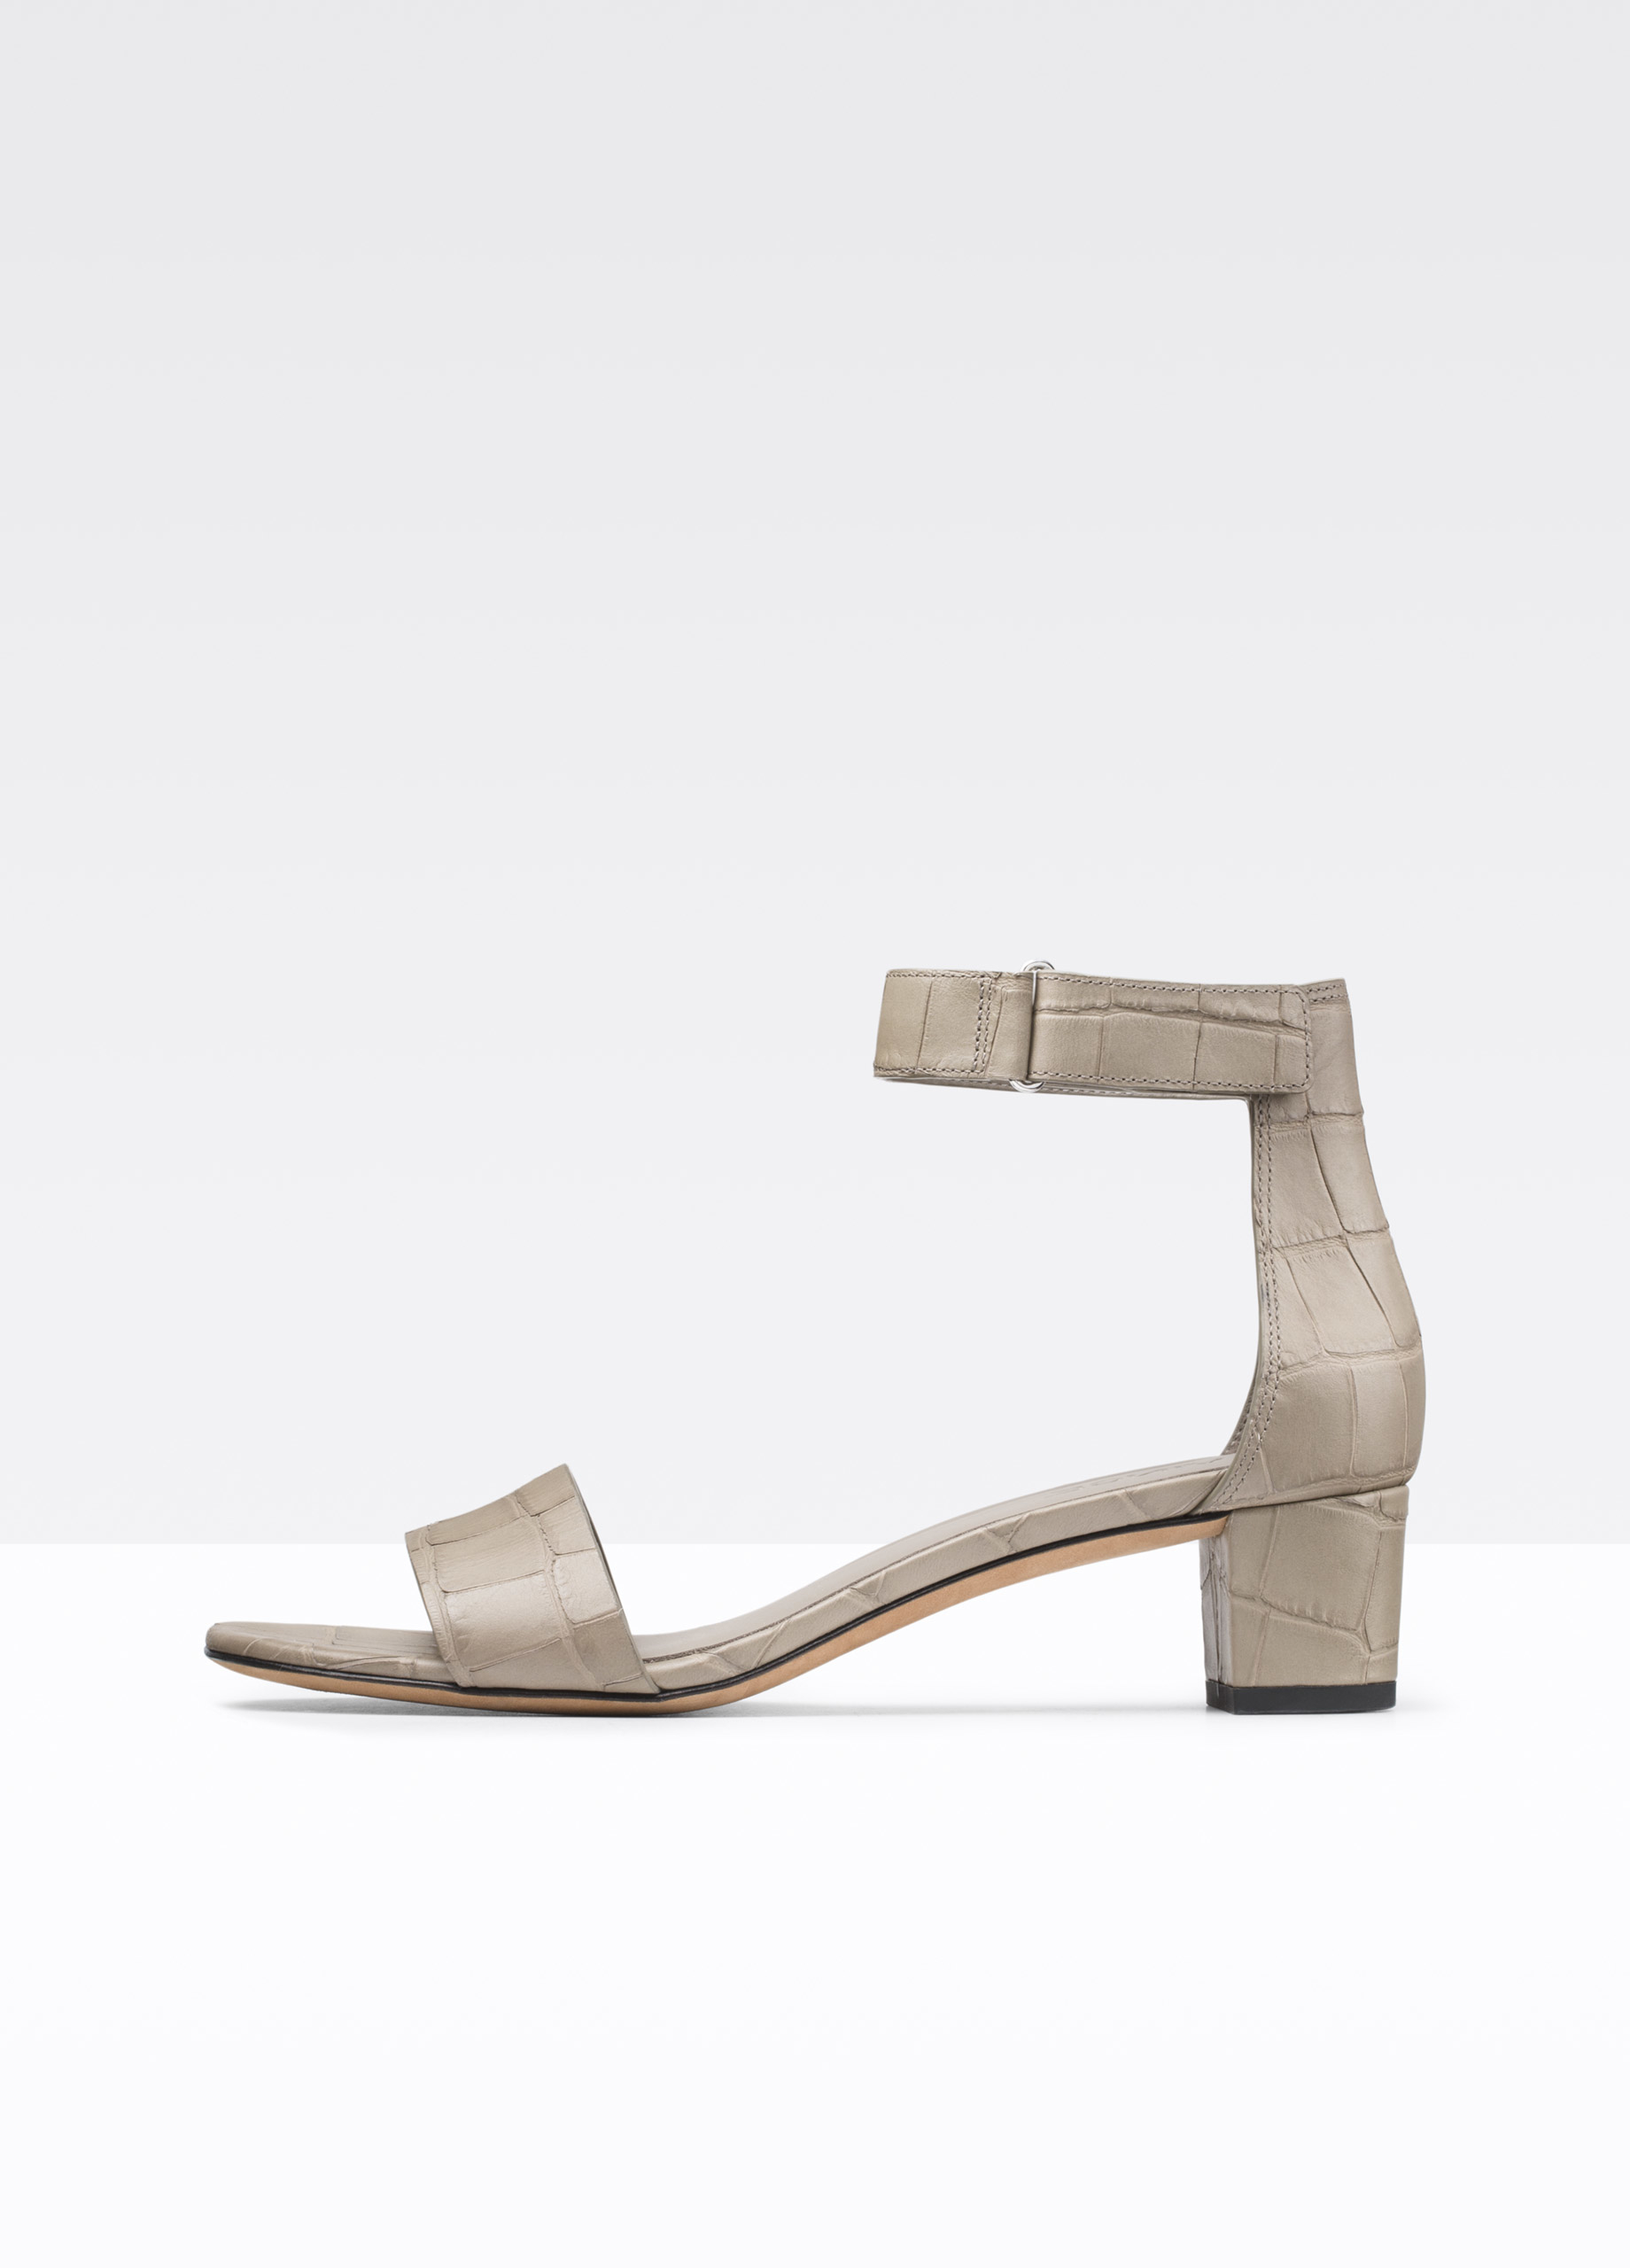 Vince Rita Croc Printed Leather City Sandal In Natural Lyst